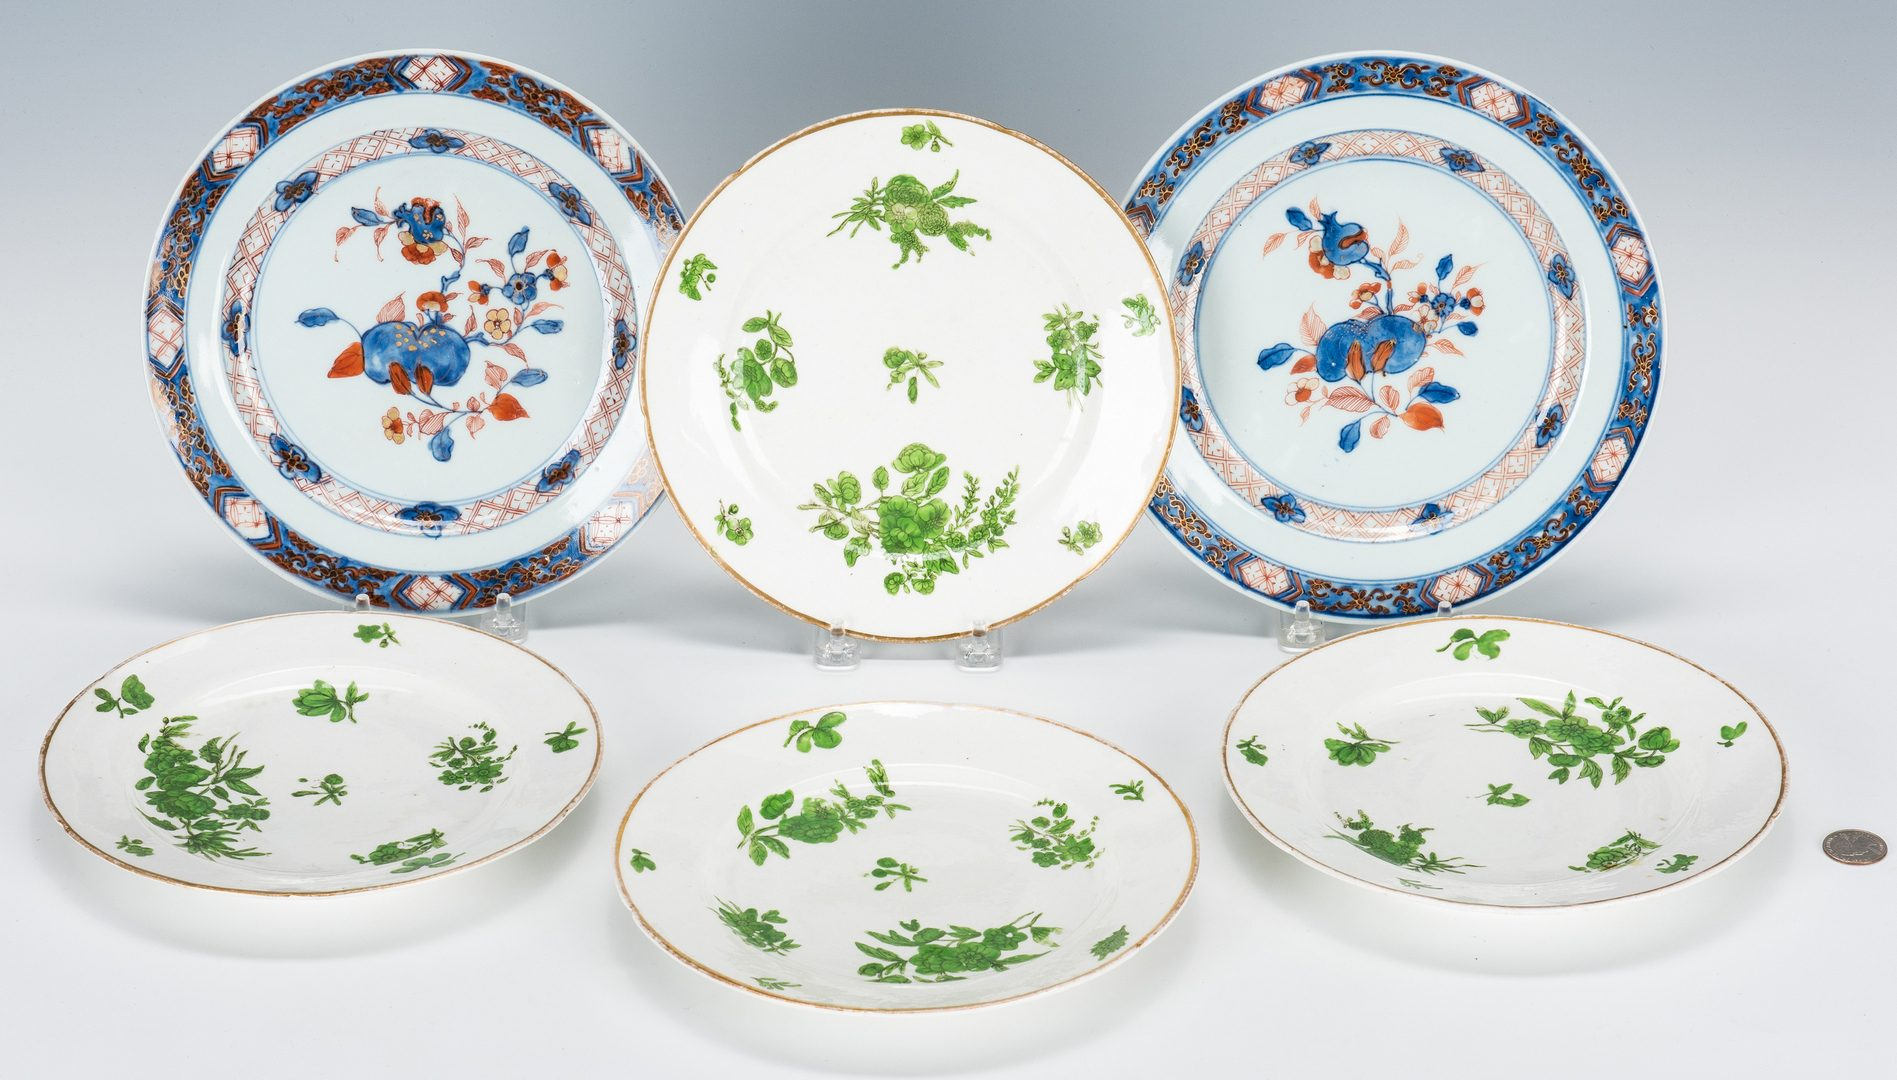 Lot 317: Chinese & English Porcelain Plates, 6 total